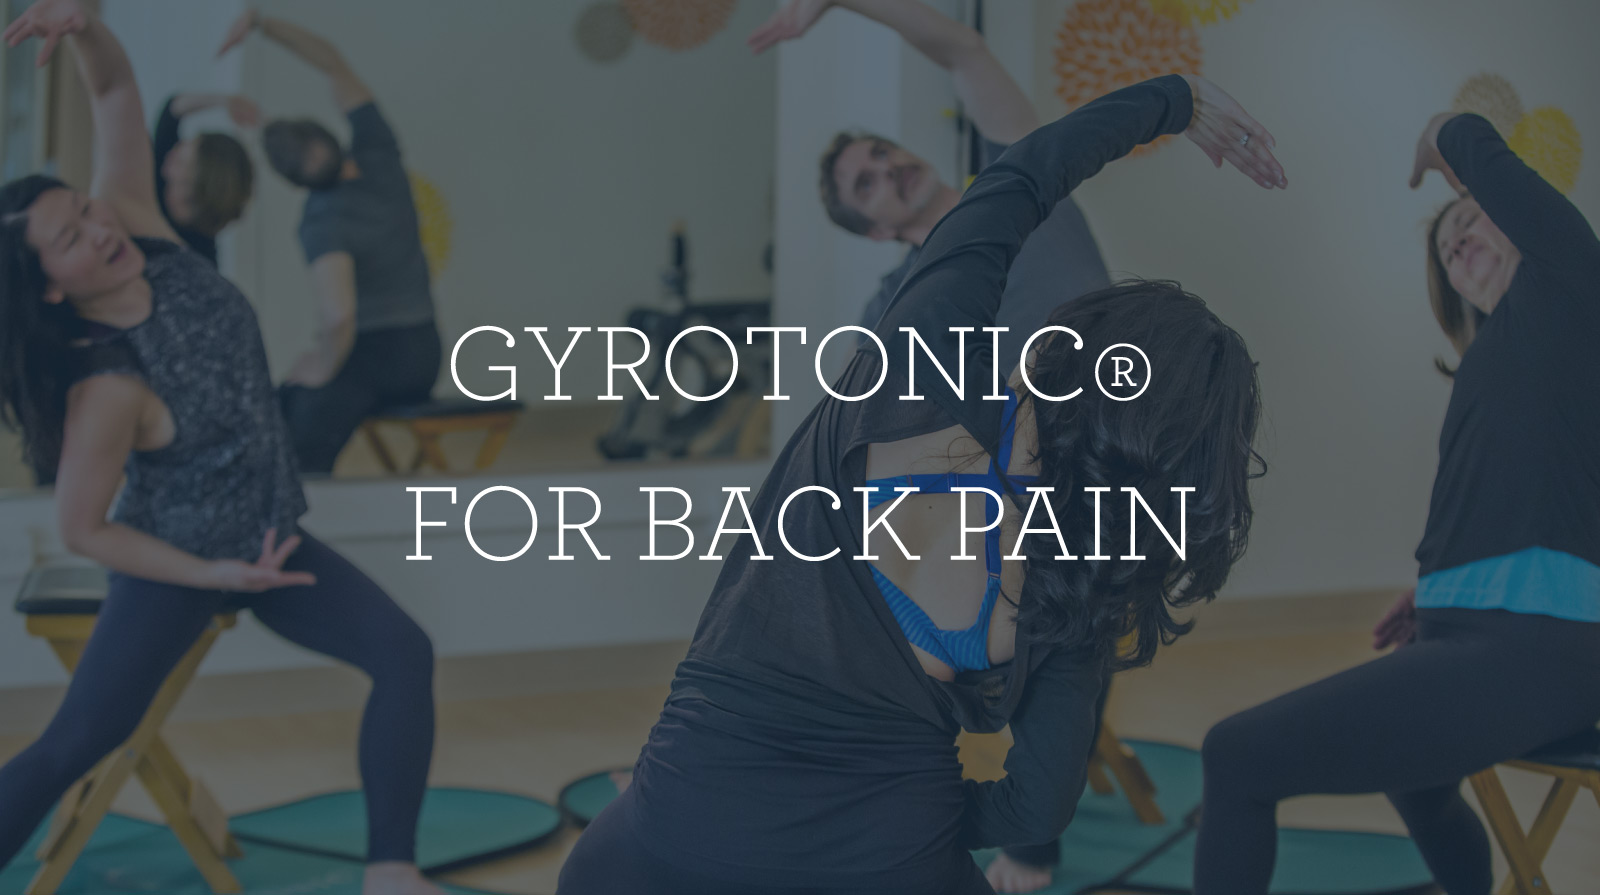 Picture of Gyrokinesis class under title Gyrotonic for Back Pain